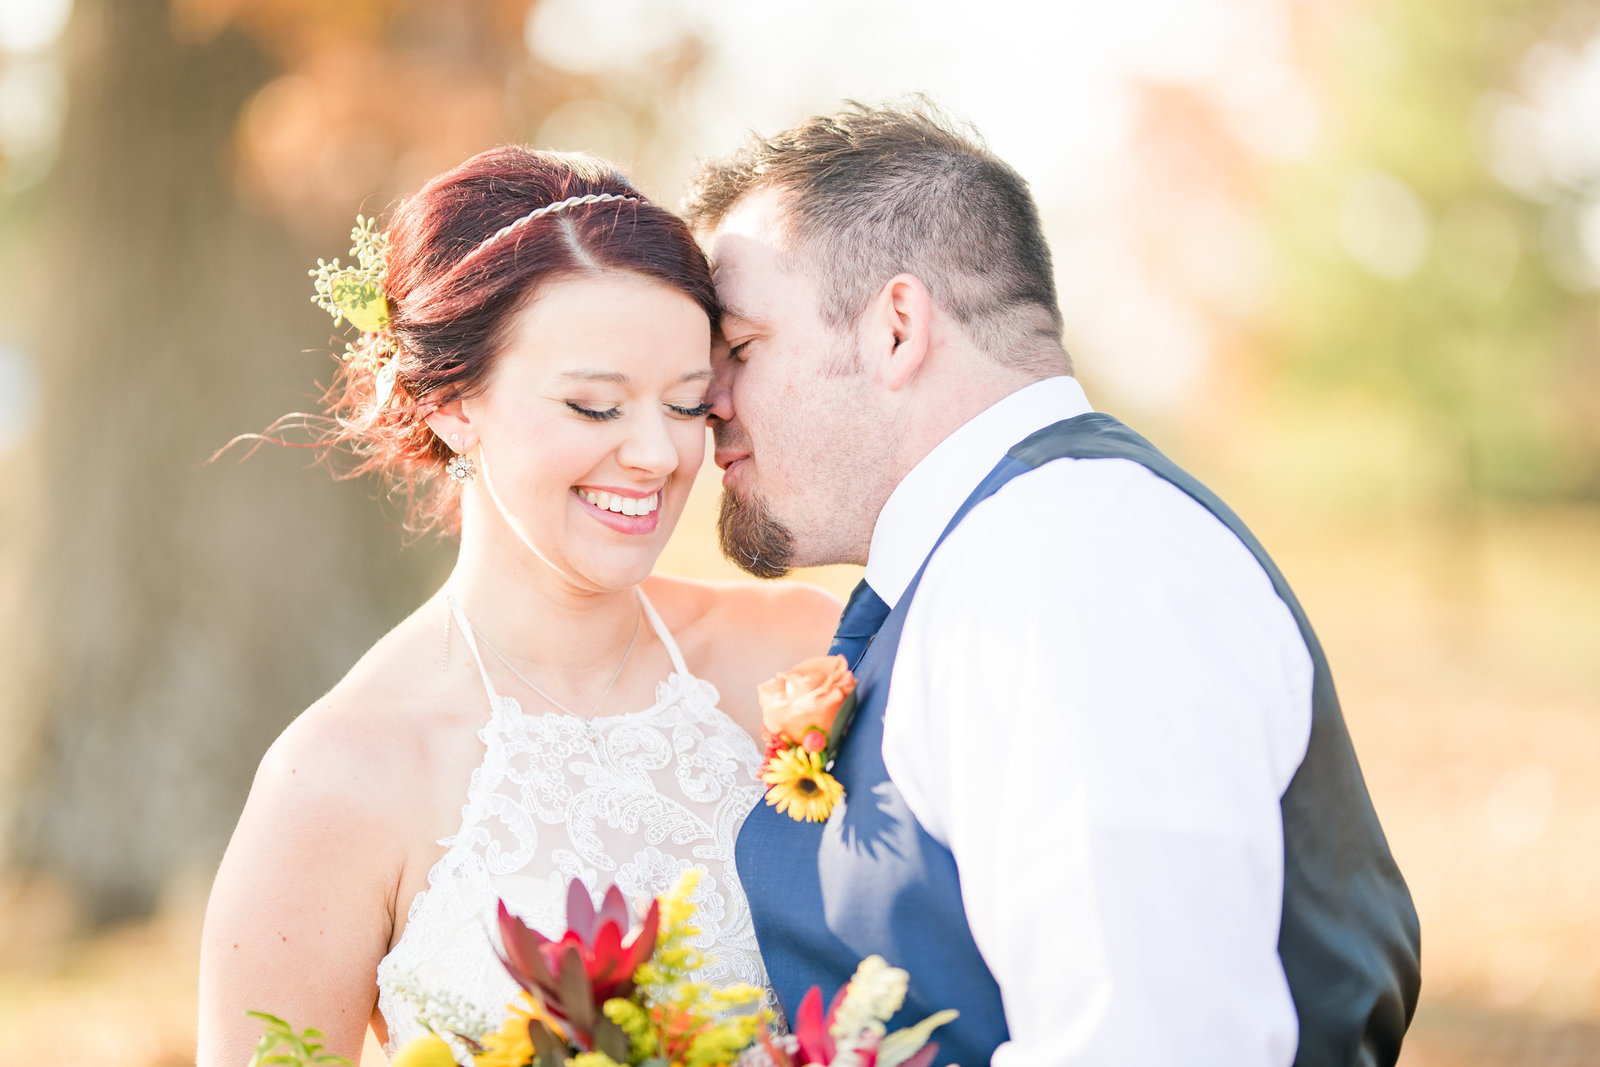 Couple Portraits Wedding Brewery Cincinnati Ohio Colorful Flowers-30